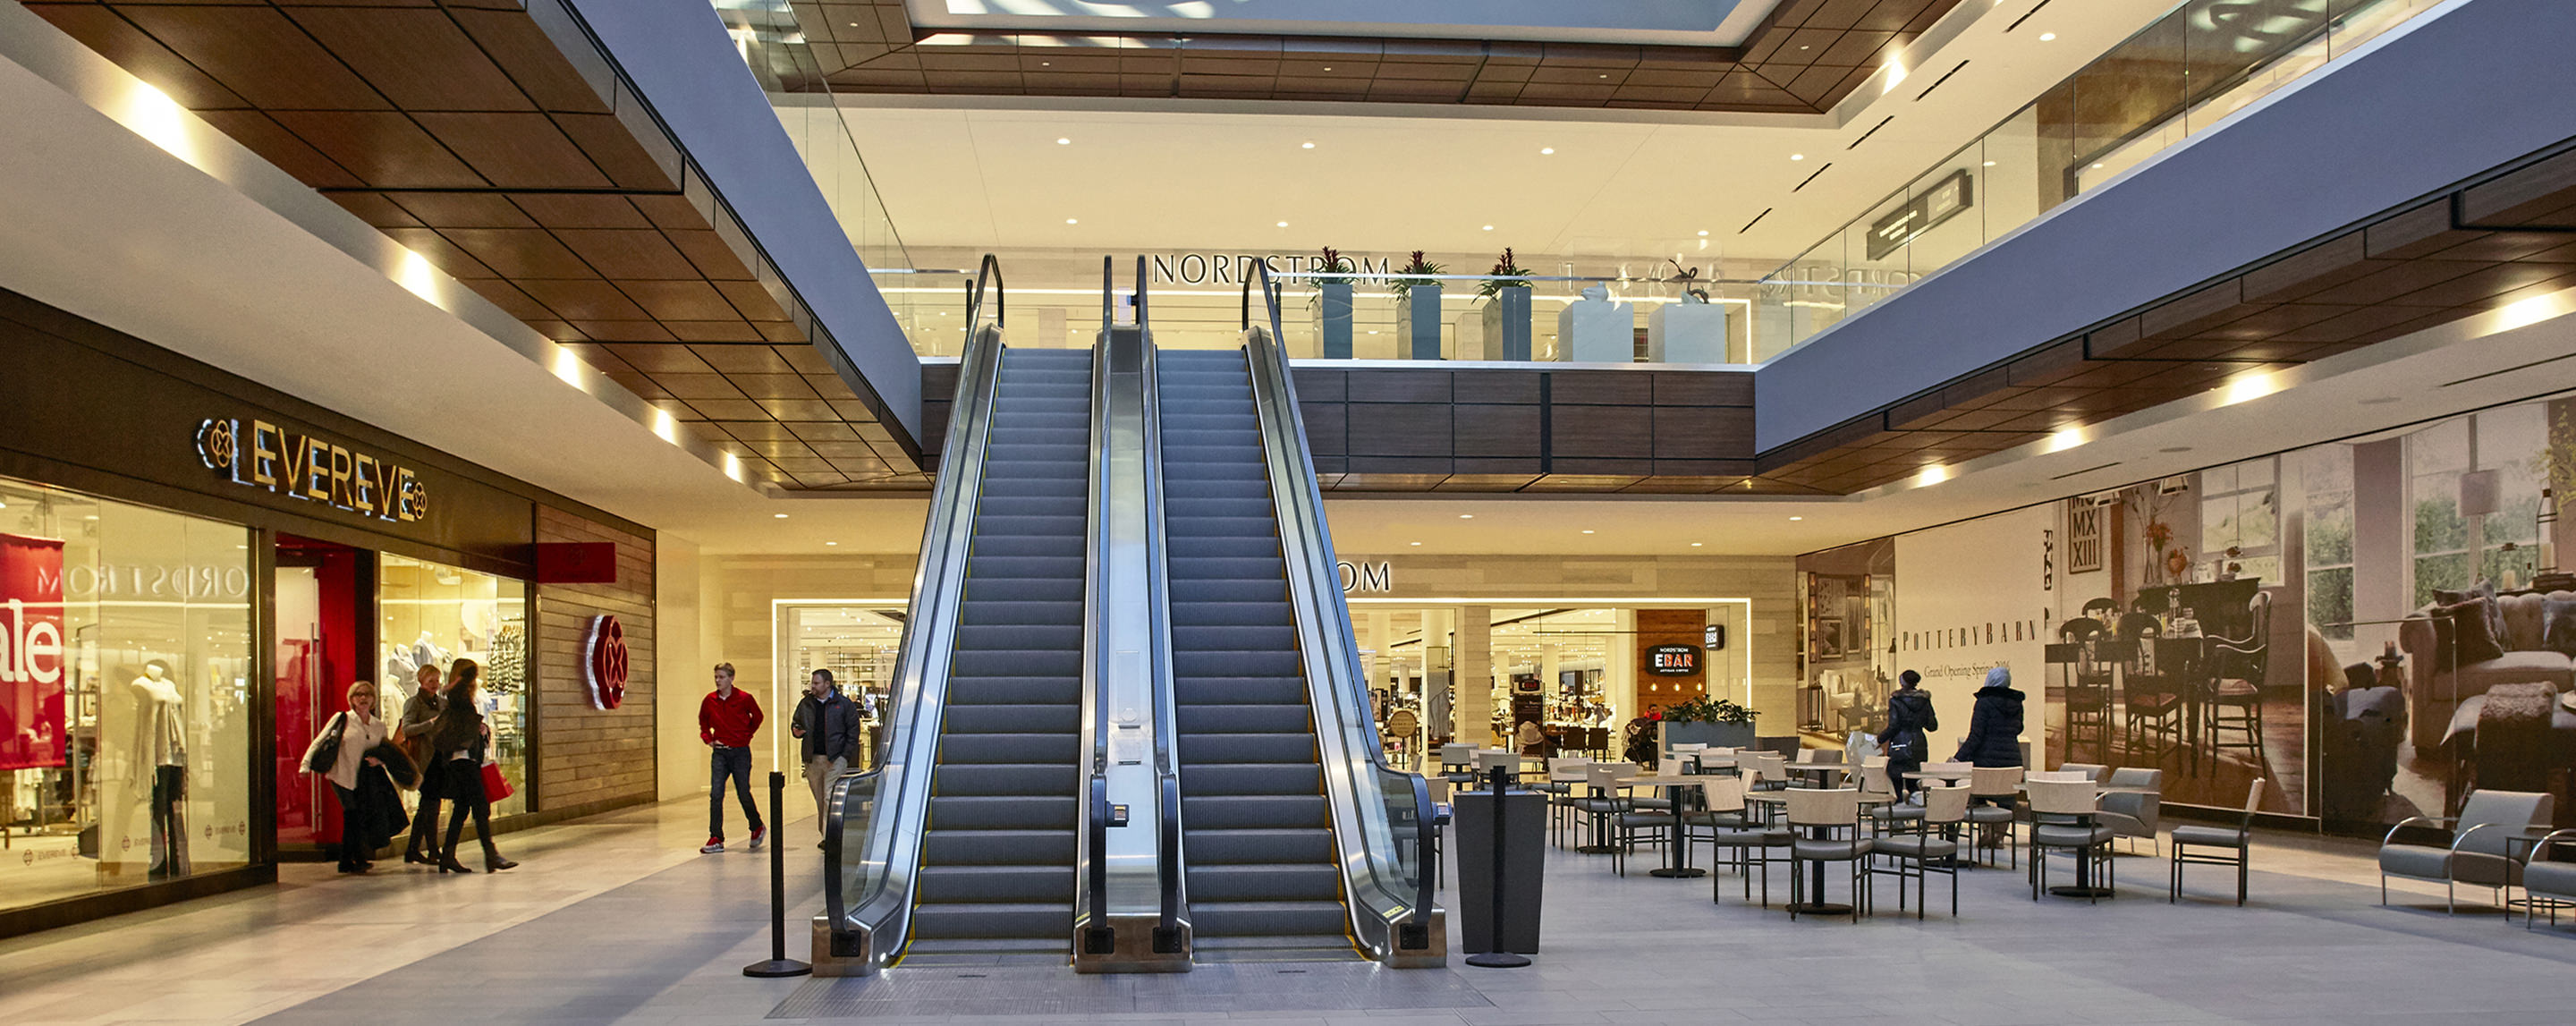 Escalators leading to the second floor of a mall are near an unoccupied seating area, Evereve and a Nordstrom store and Ebar.